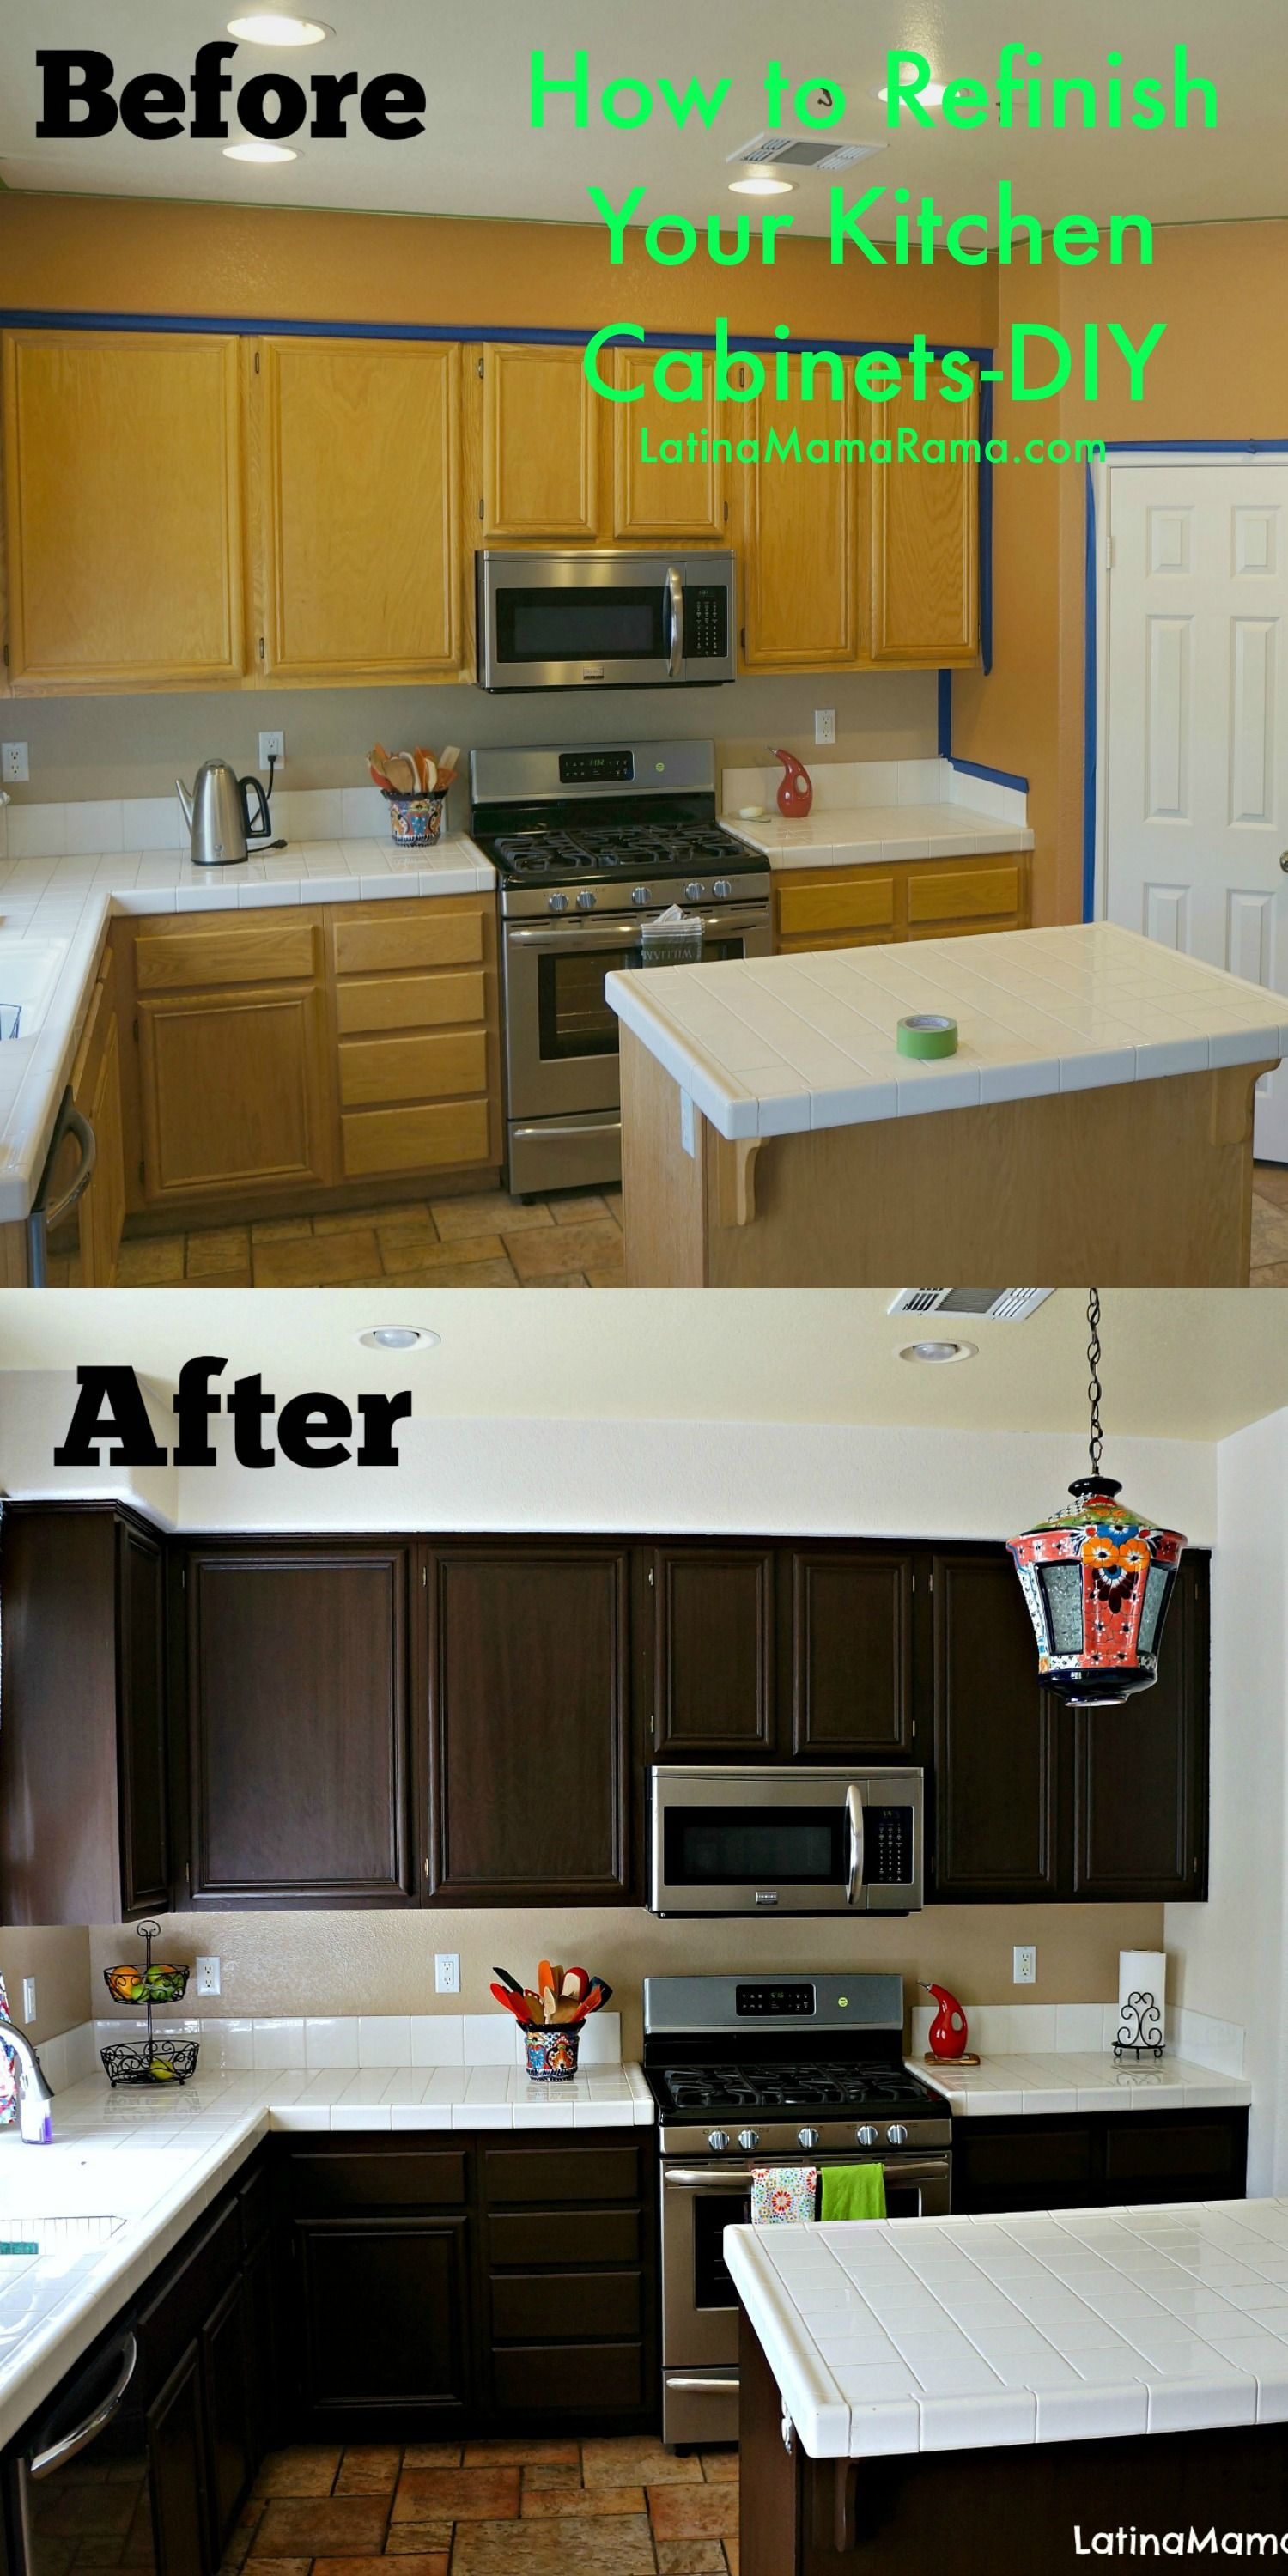 cheap cabinets for kitchen How to Refinish Your Kitchen Cabinets